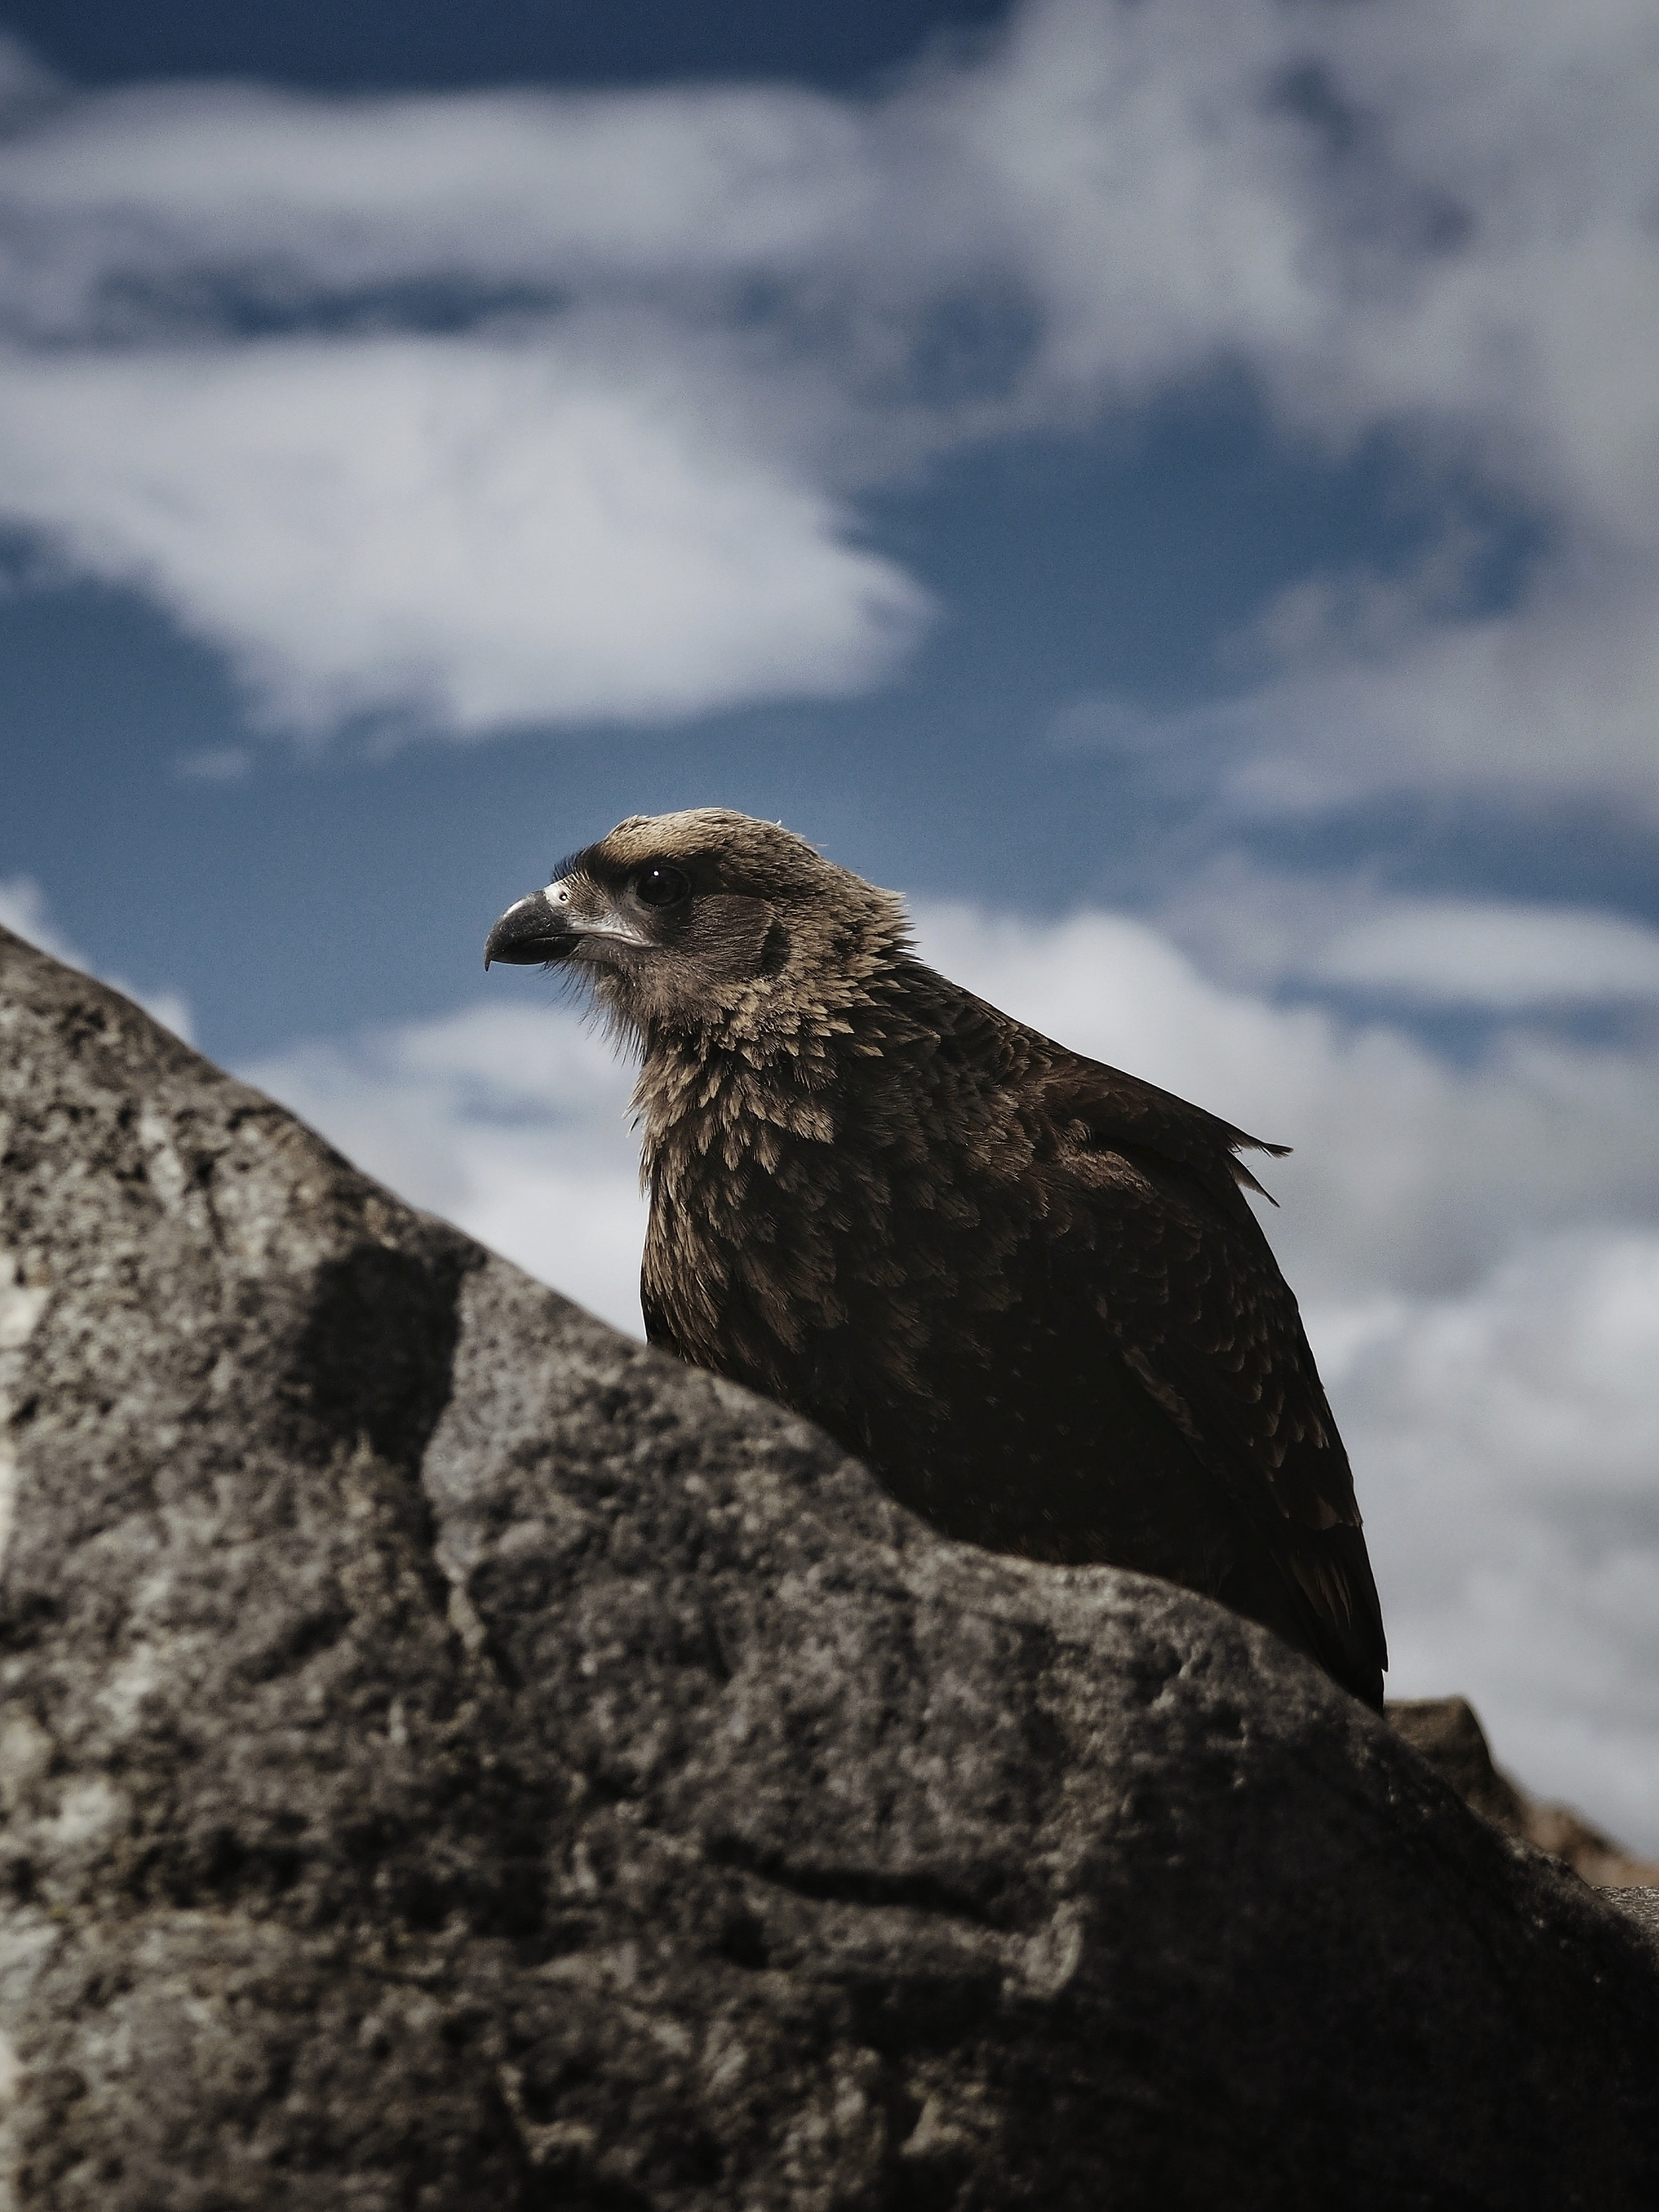 153183 download wallpaper Animals, Hawk, Bird, Rock, Wildlife screensavers and pictures for free